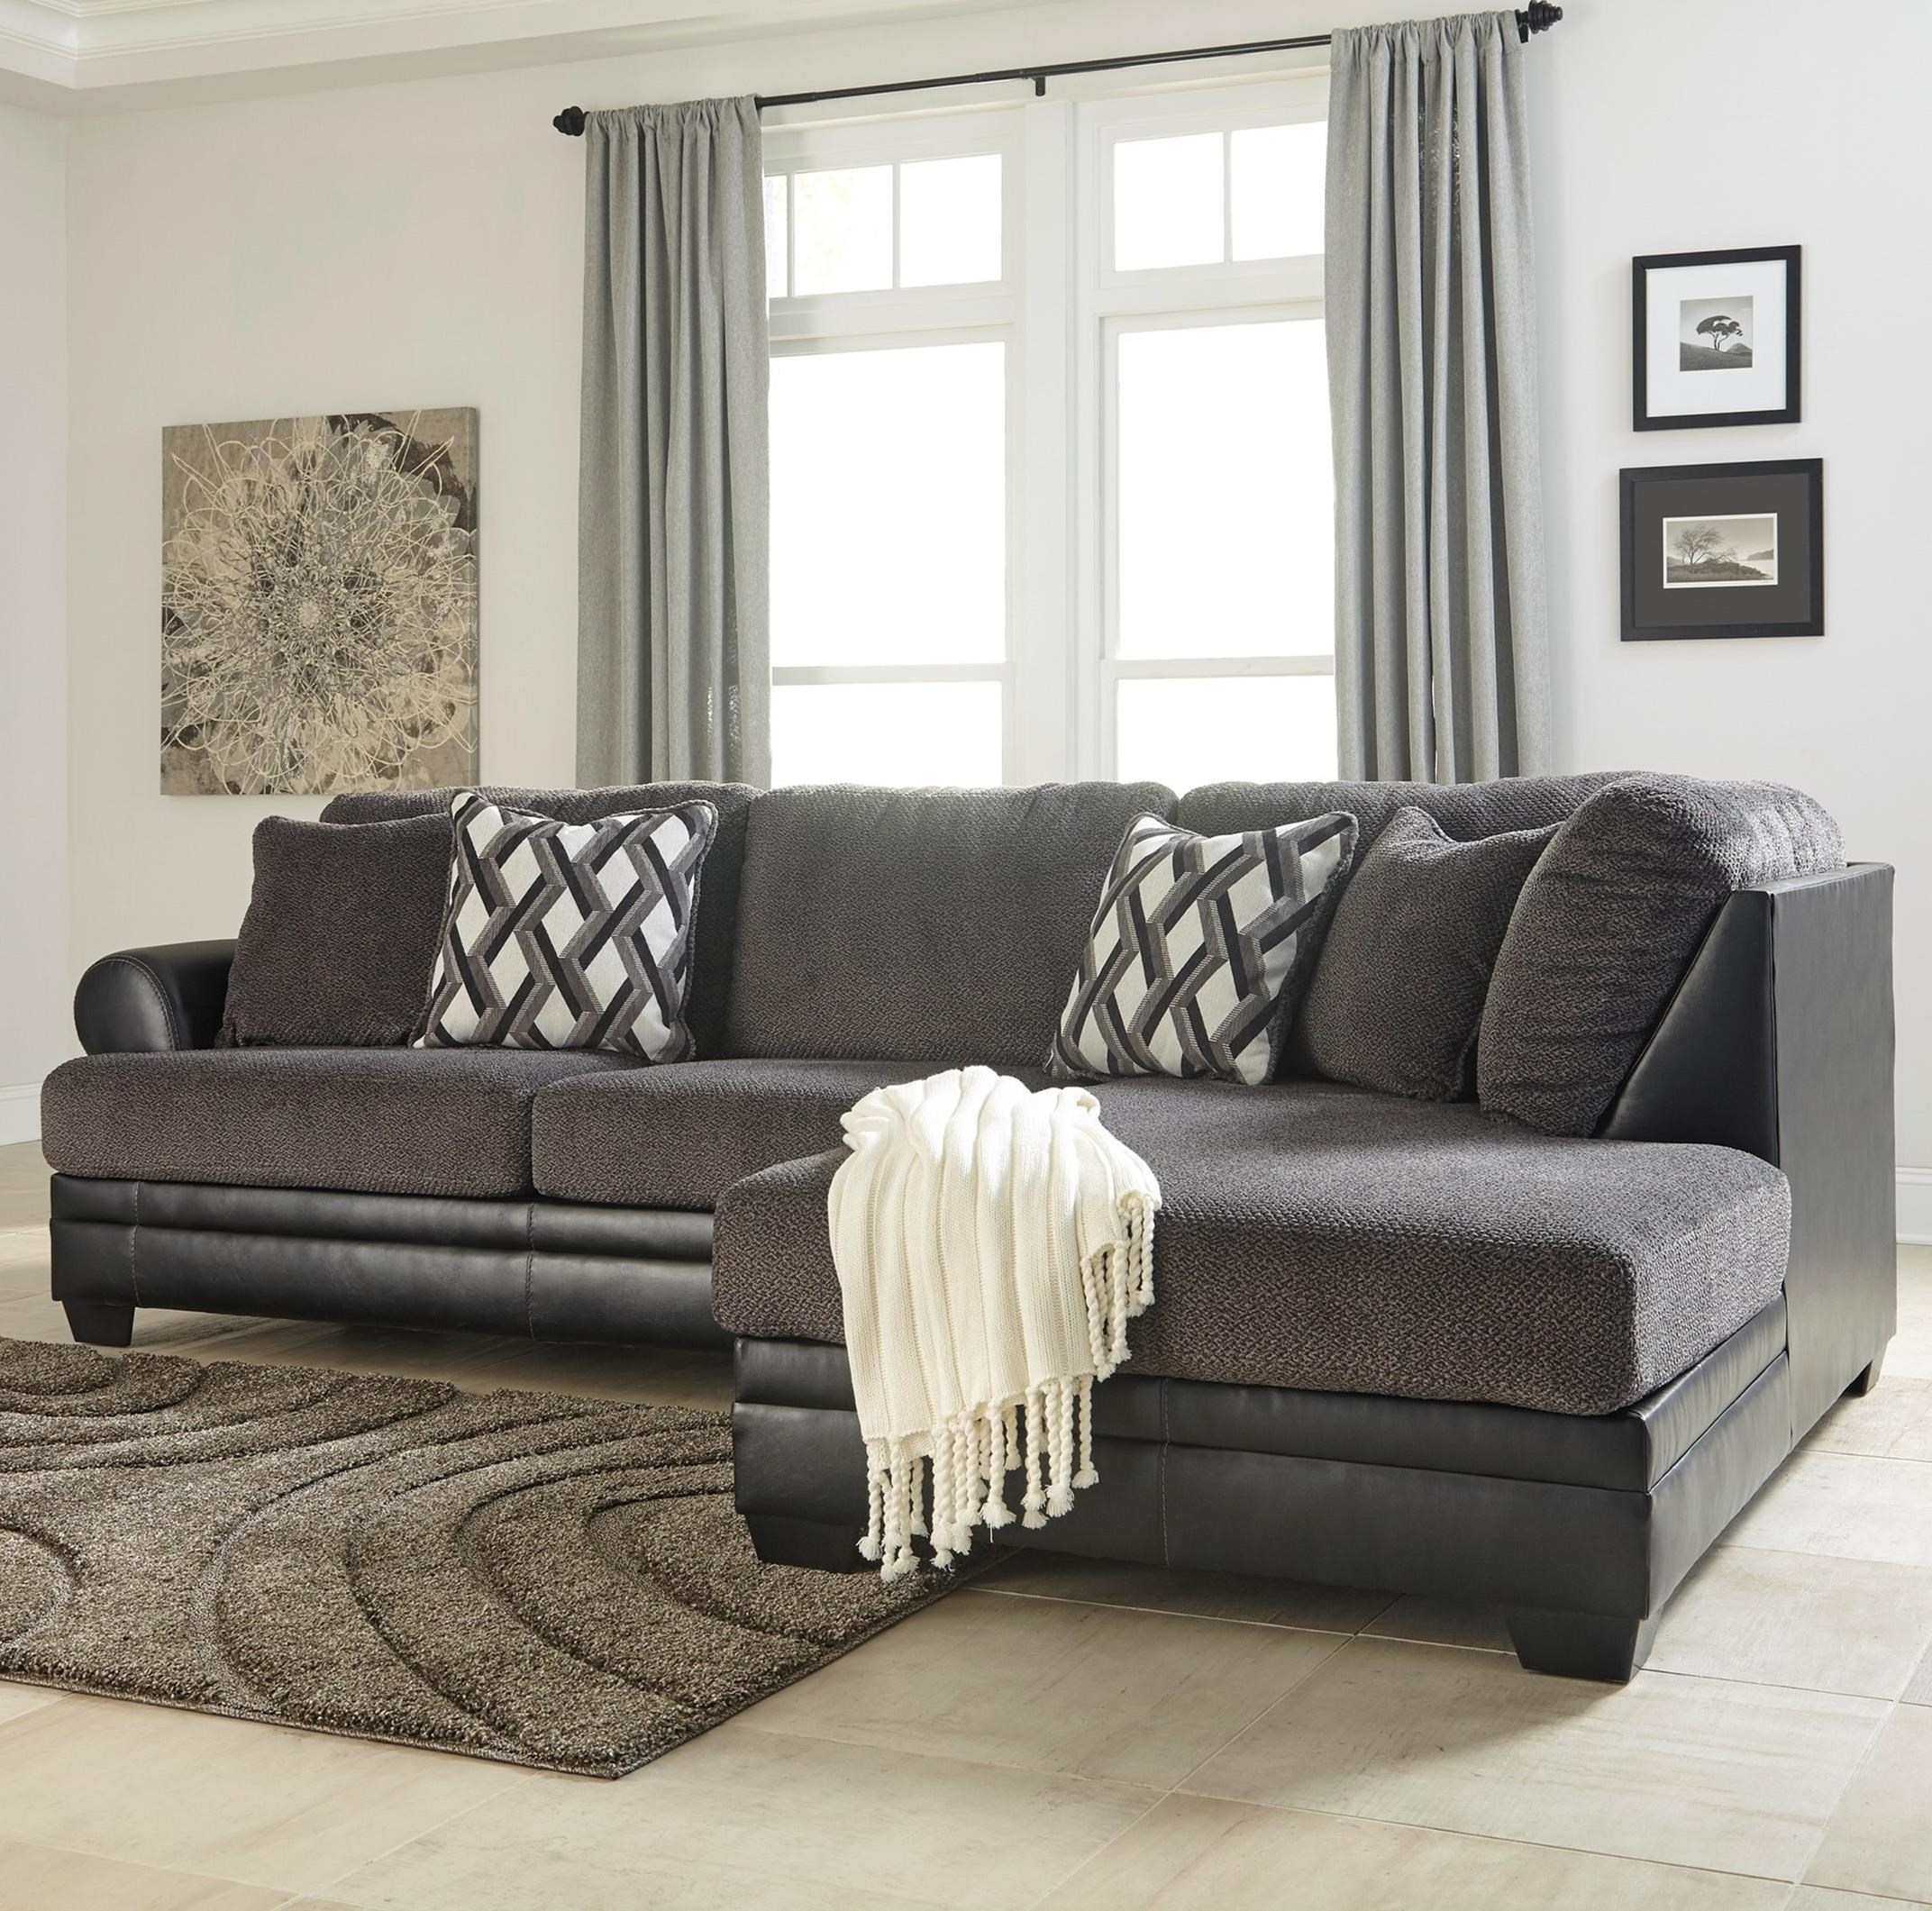 2 Piece Sectionals With Chaise With Regard To Latest Benchcraft Kumasi 2 Piece Fabric/faux Leather Sectional With Left (View 3 of 15)